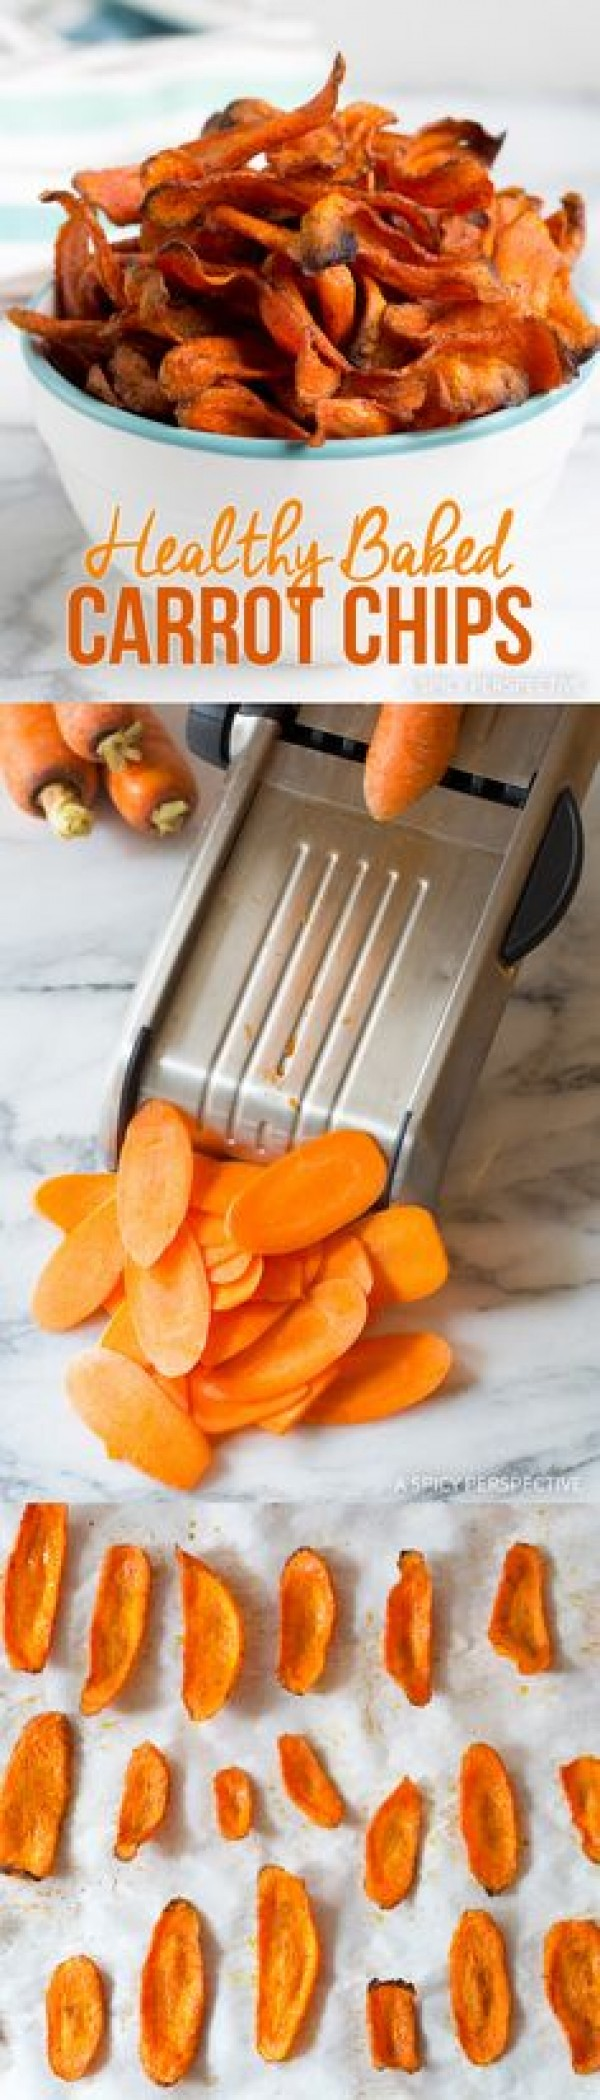 Get the recipe Healthy Baked Carrot Chips @recipes_to_go